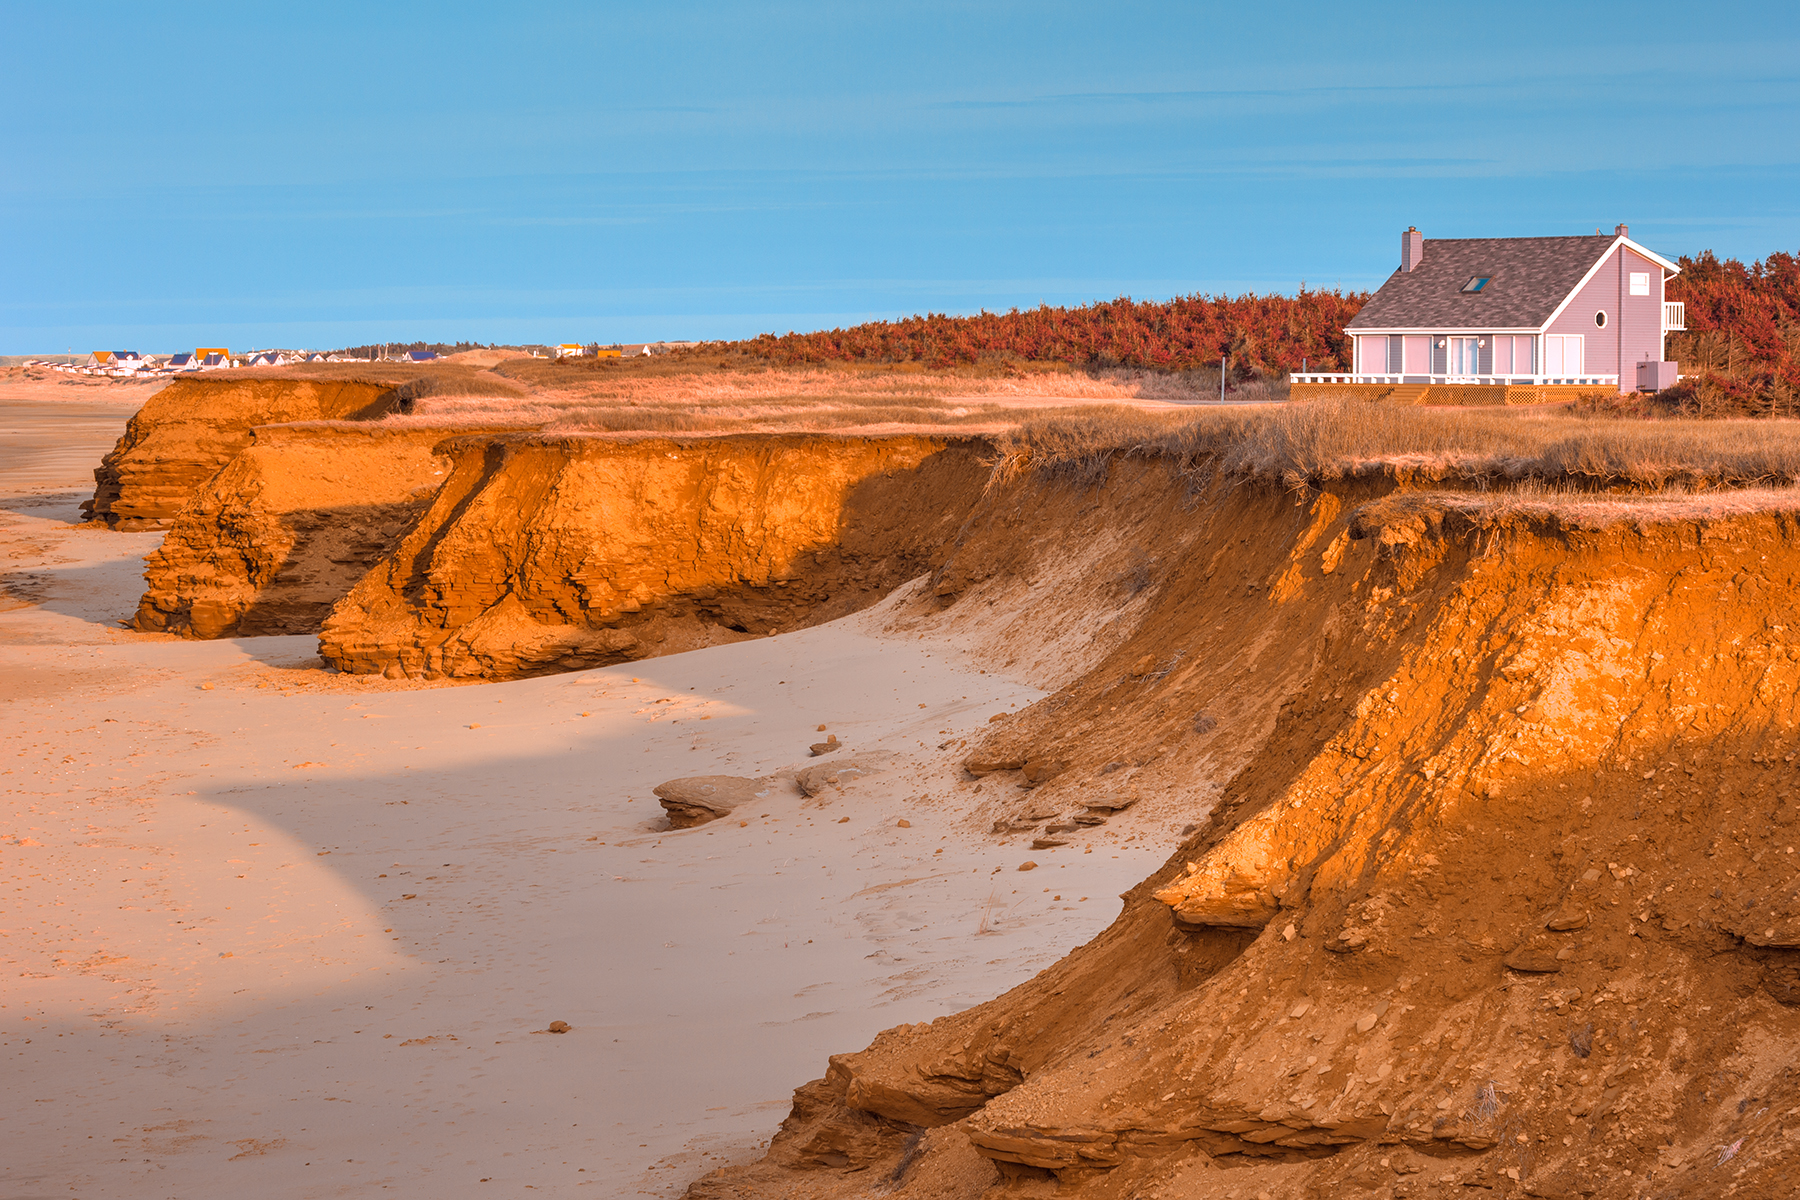 Thunder cove beach cliffs - golden pastel hour hdr photo